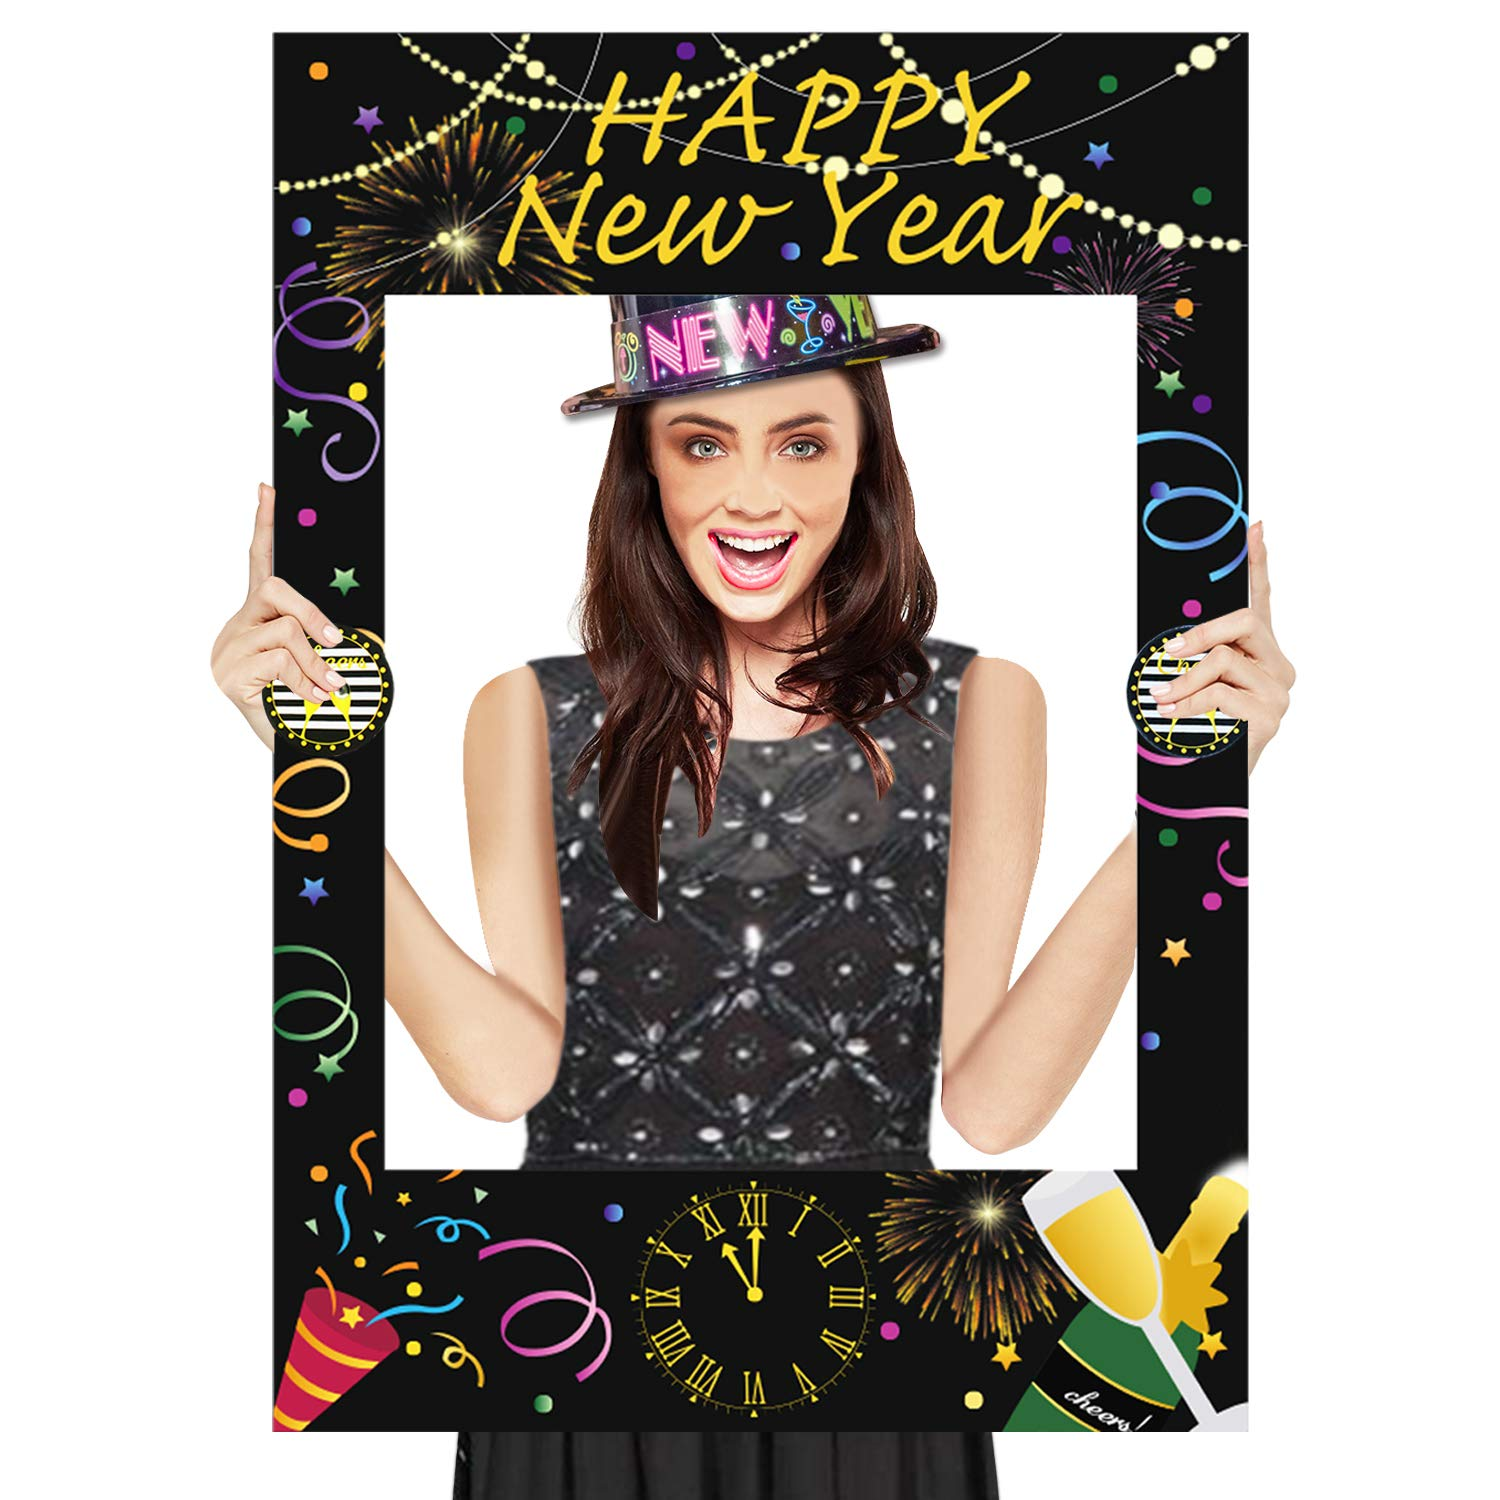 Happy New Year Photo Booth Props Frame New Years Eve Photo Booth